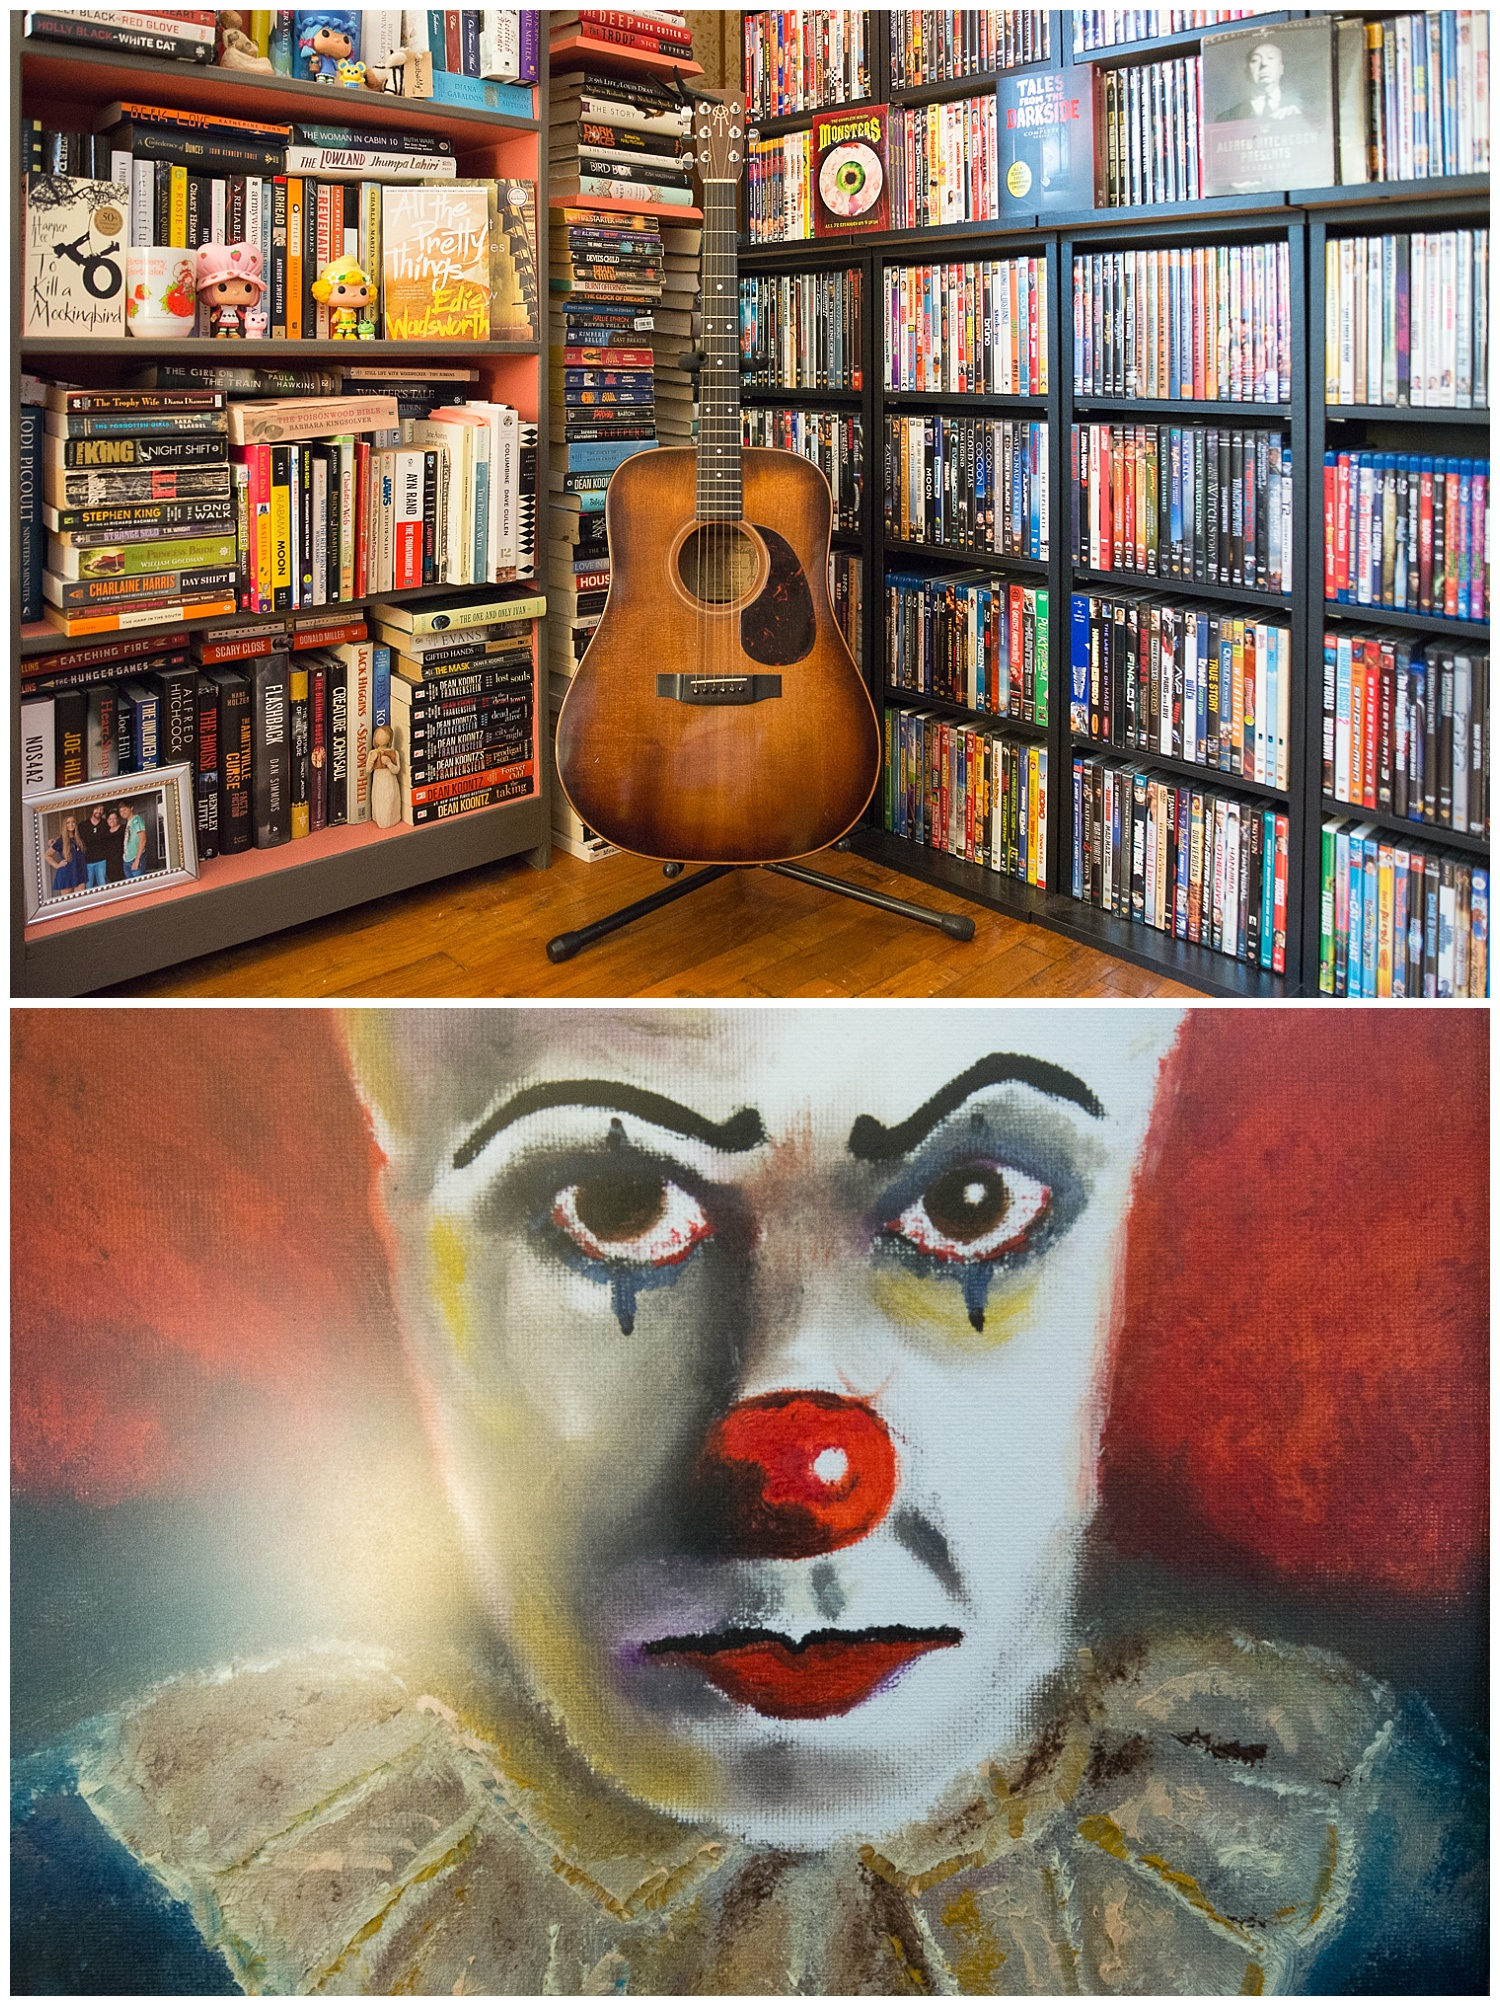 Books meet music.  And below we get a taste of Aaron's style with his painting of a creepy clown.  Have I mentioned that he's a very talented guy?